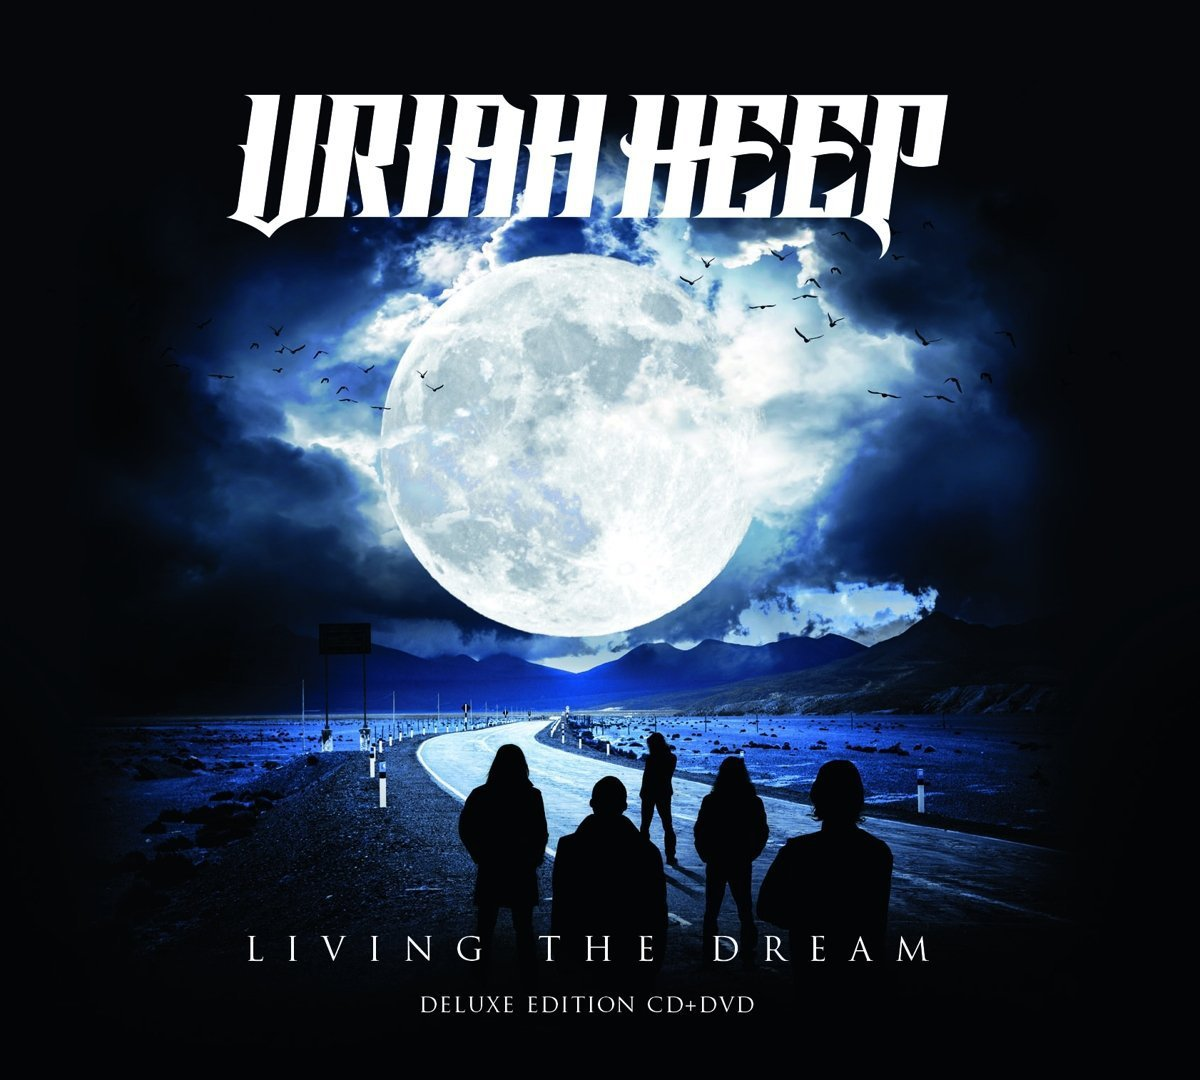 CD : Uriah Heep - Living The Dream (With DVD, Deluxe Edition)